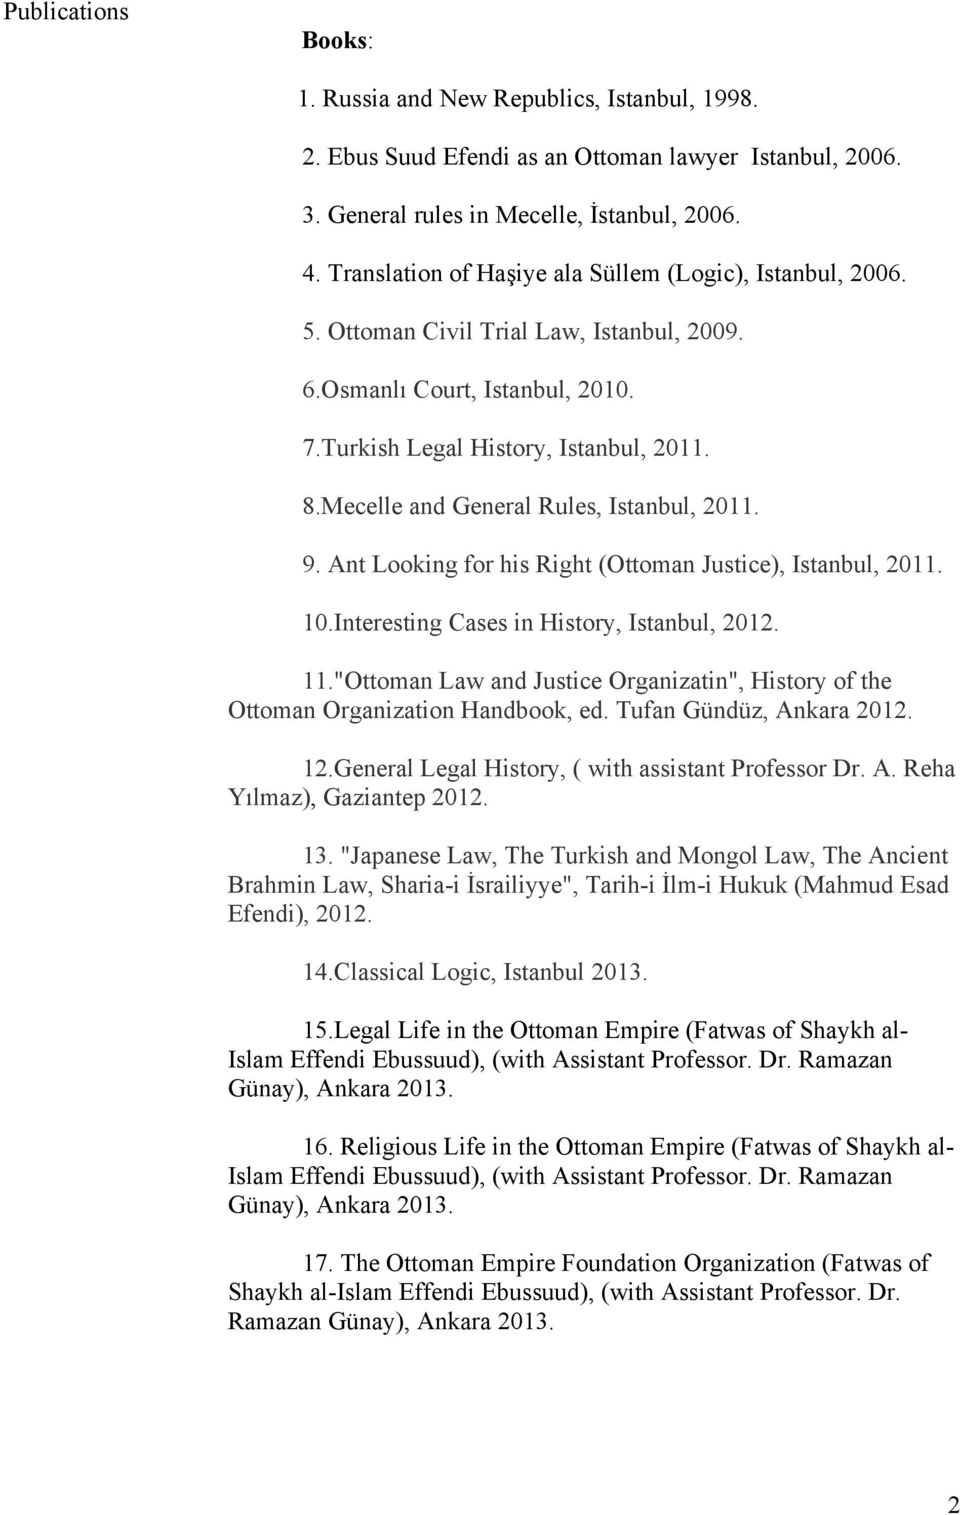 Mecelle and General Rules, Istanbul, 2011. 9. Ant Looking for his Right (Ottoman Justice), Istanbul, 2011. 10.Interesting Cases in History, Istanbul, 2012. 11.